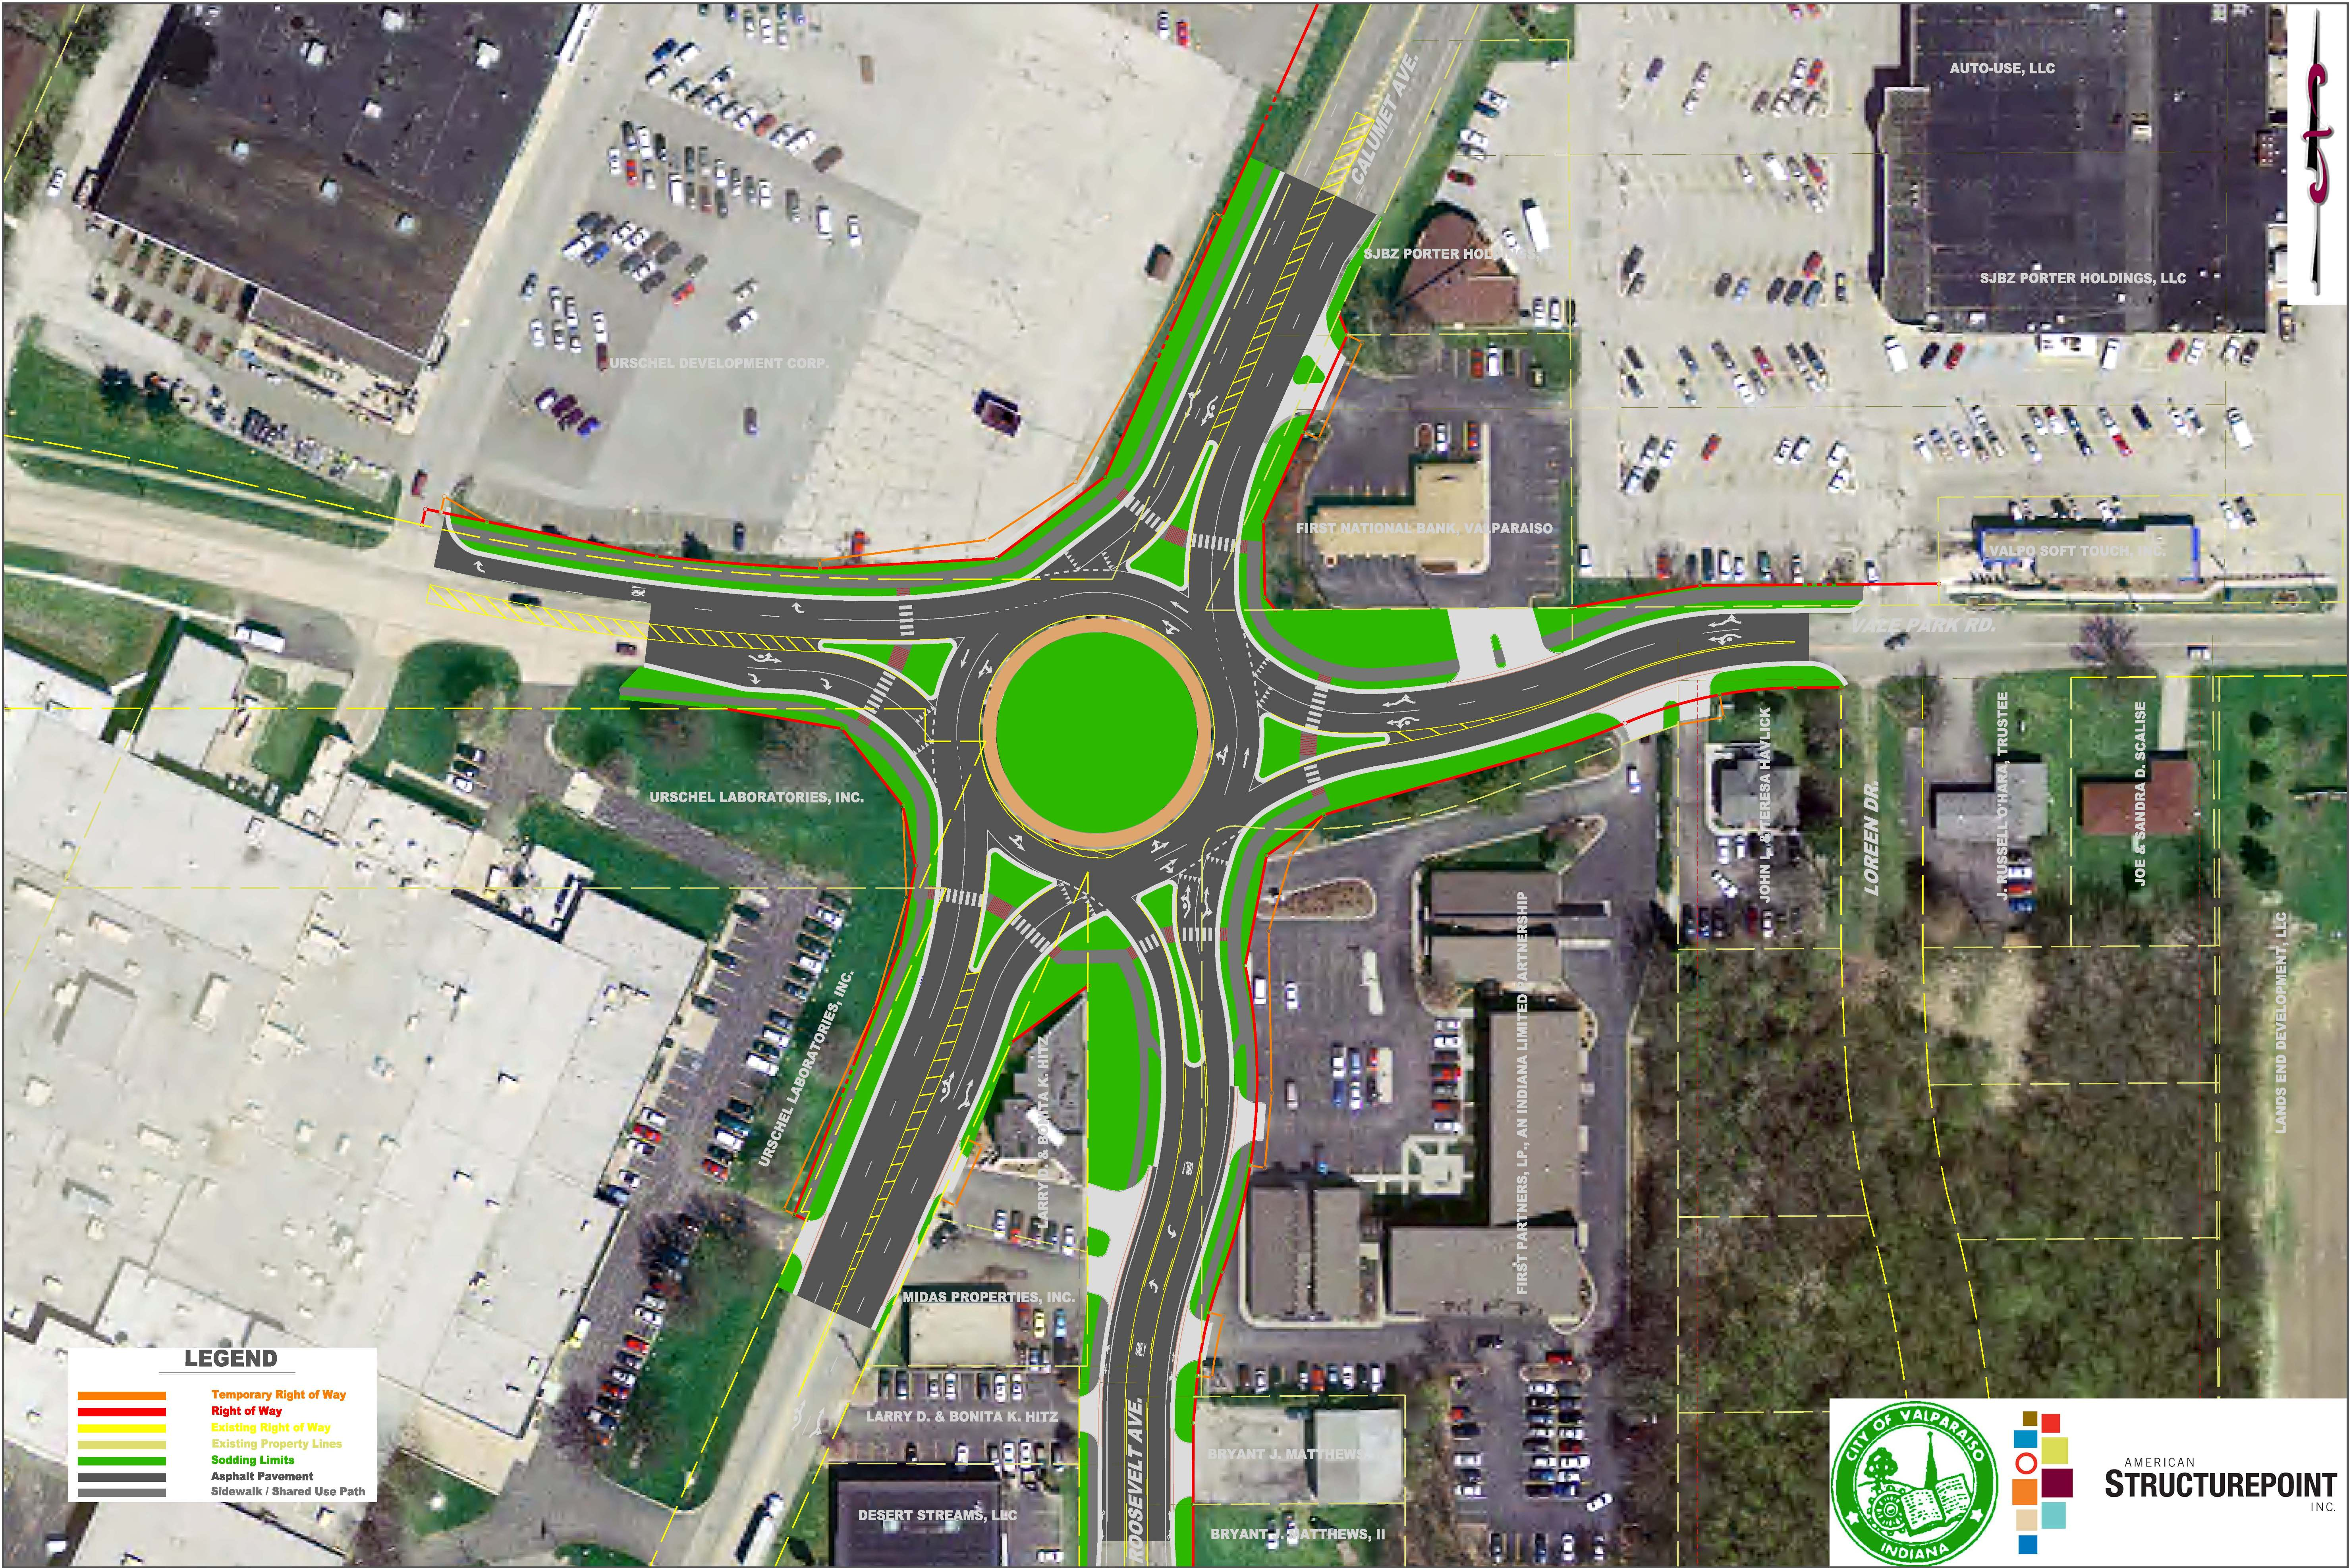 Crash prone 'modern roundabouts'